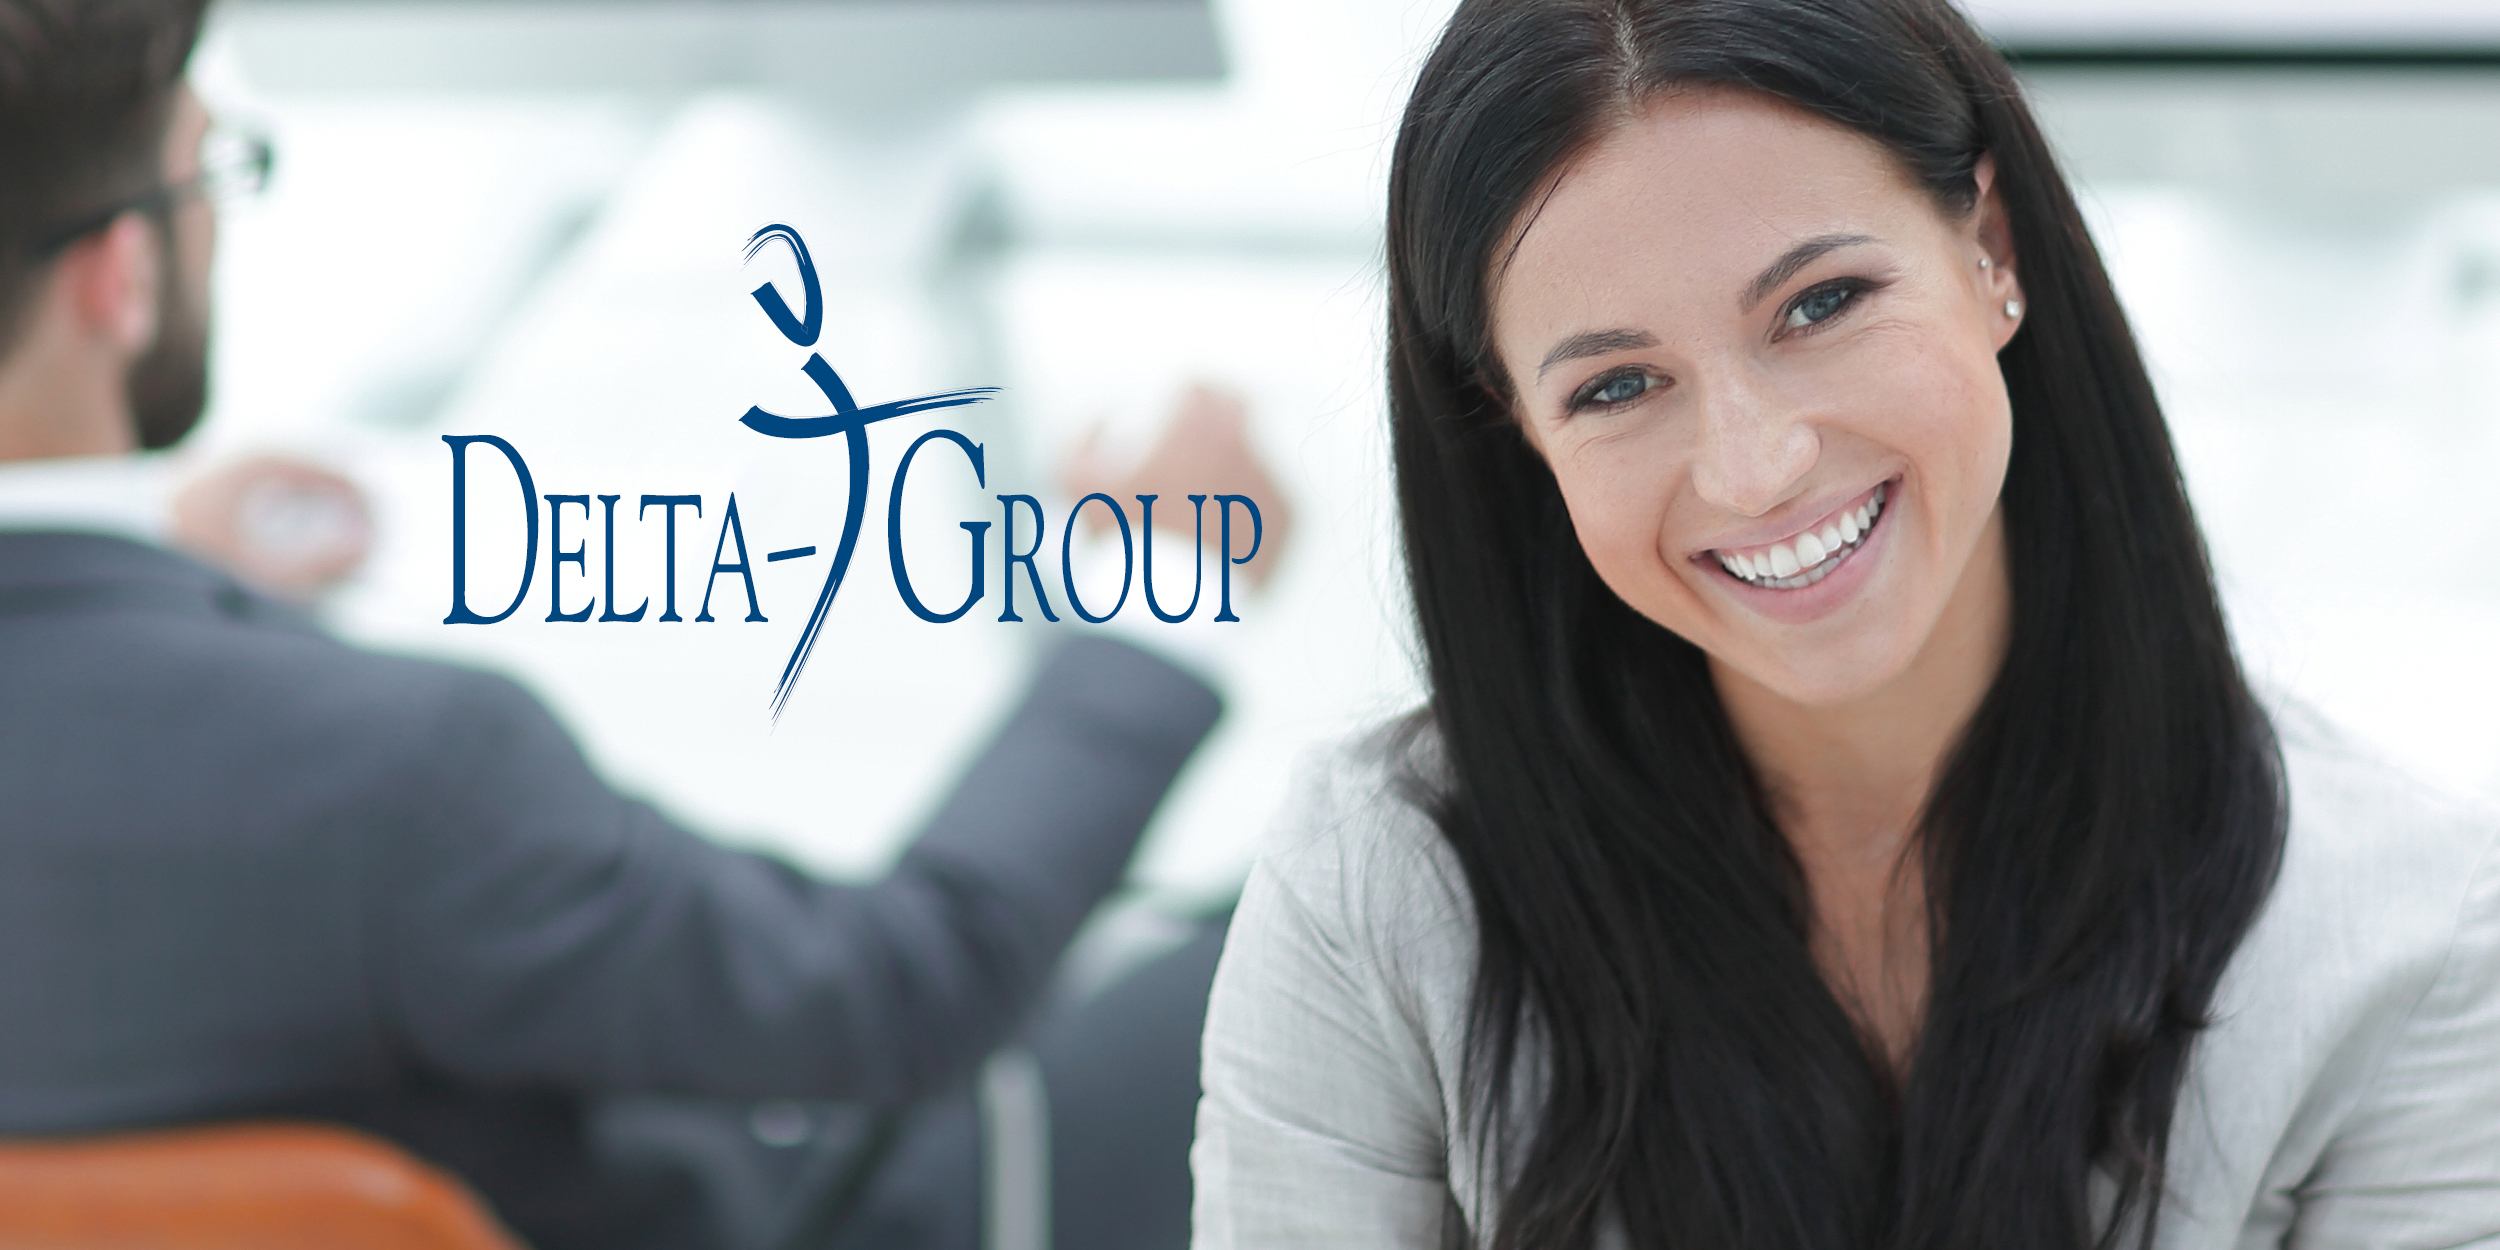 Delta-T Group - Mental Health Aide banner image